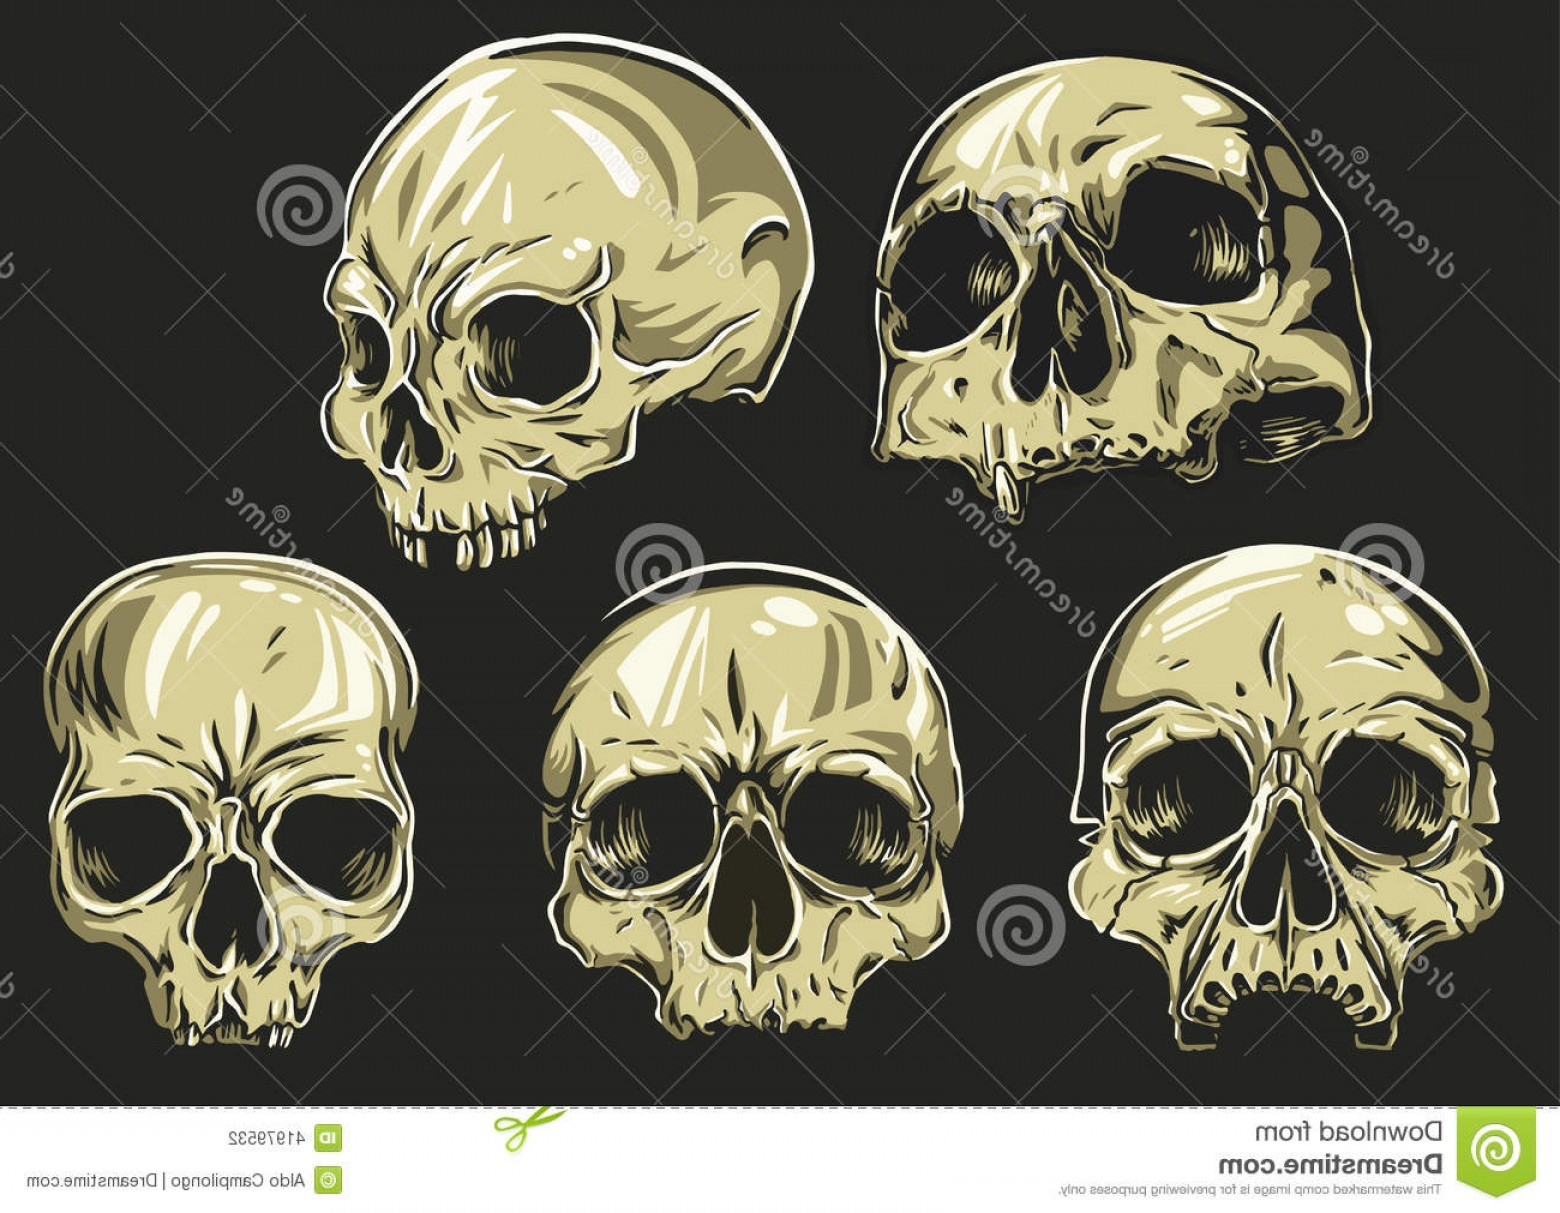 His And Hers Skulls Vector: Stock Illustration Skulls Vector Set To Remove Change Fill Color Just Open Group Skull Illustrator Select Color Path Image